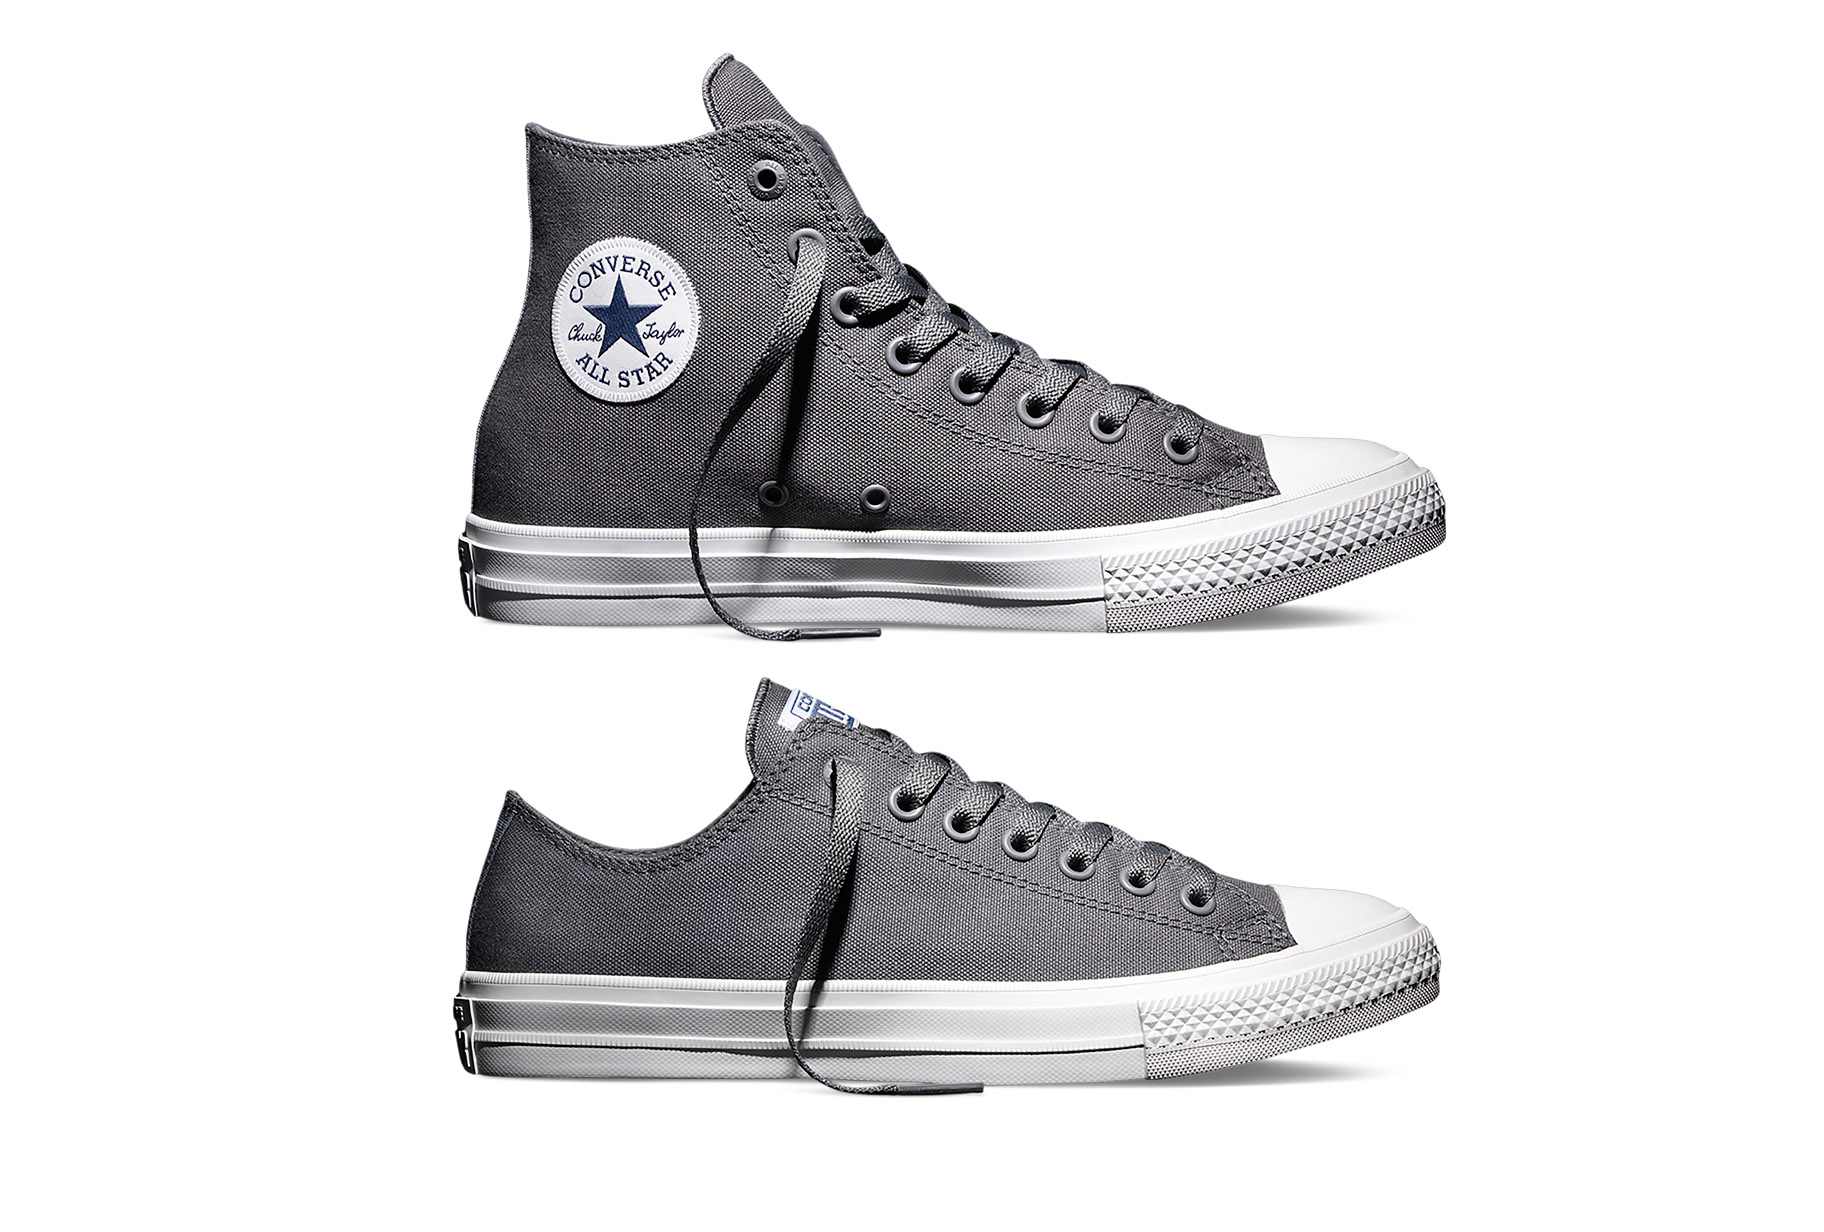 converse chuck taylor all star 2 Archives WearTesters